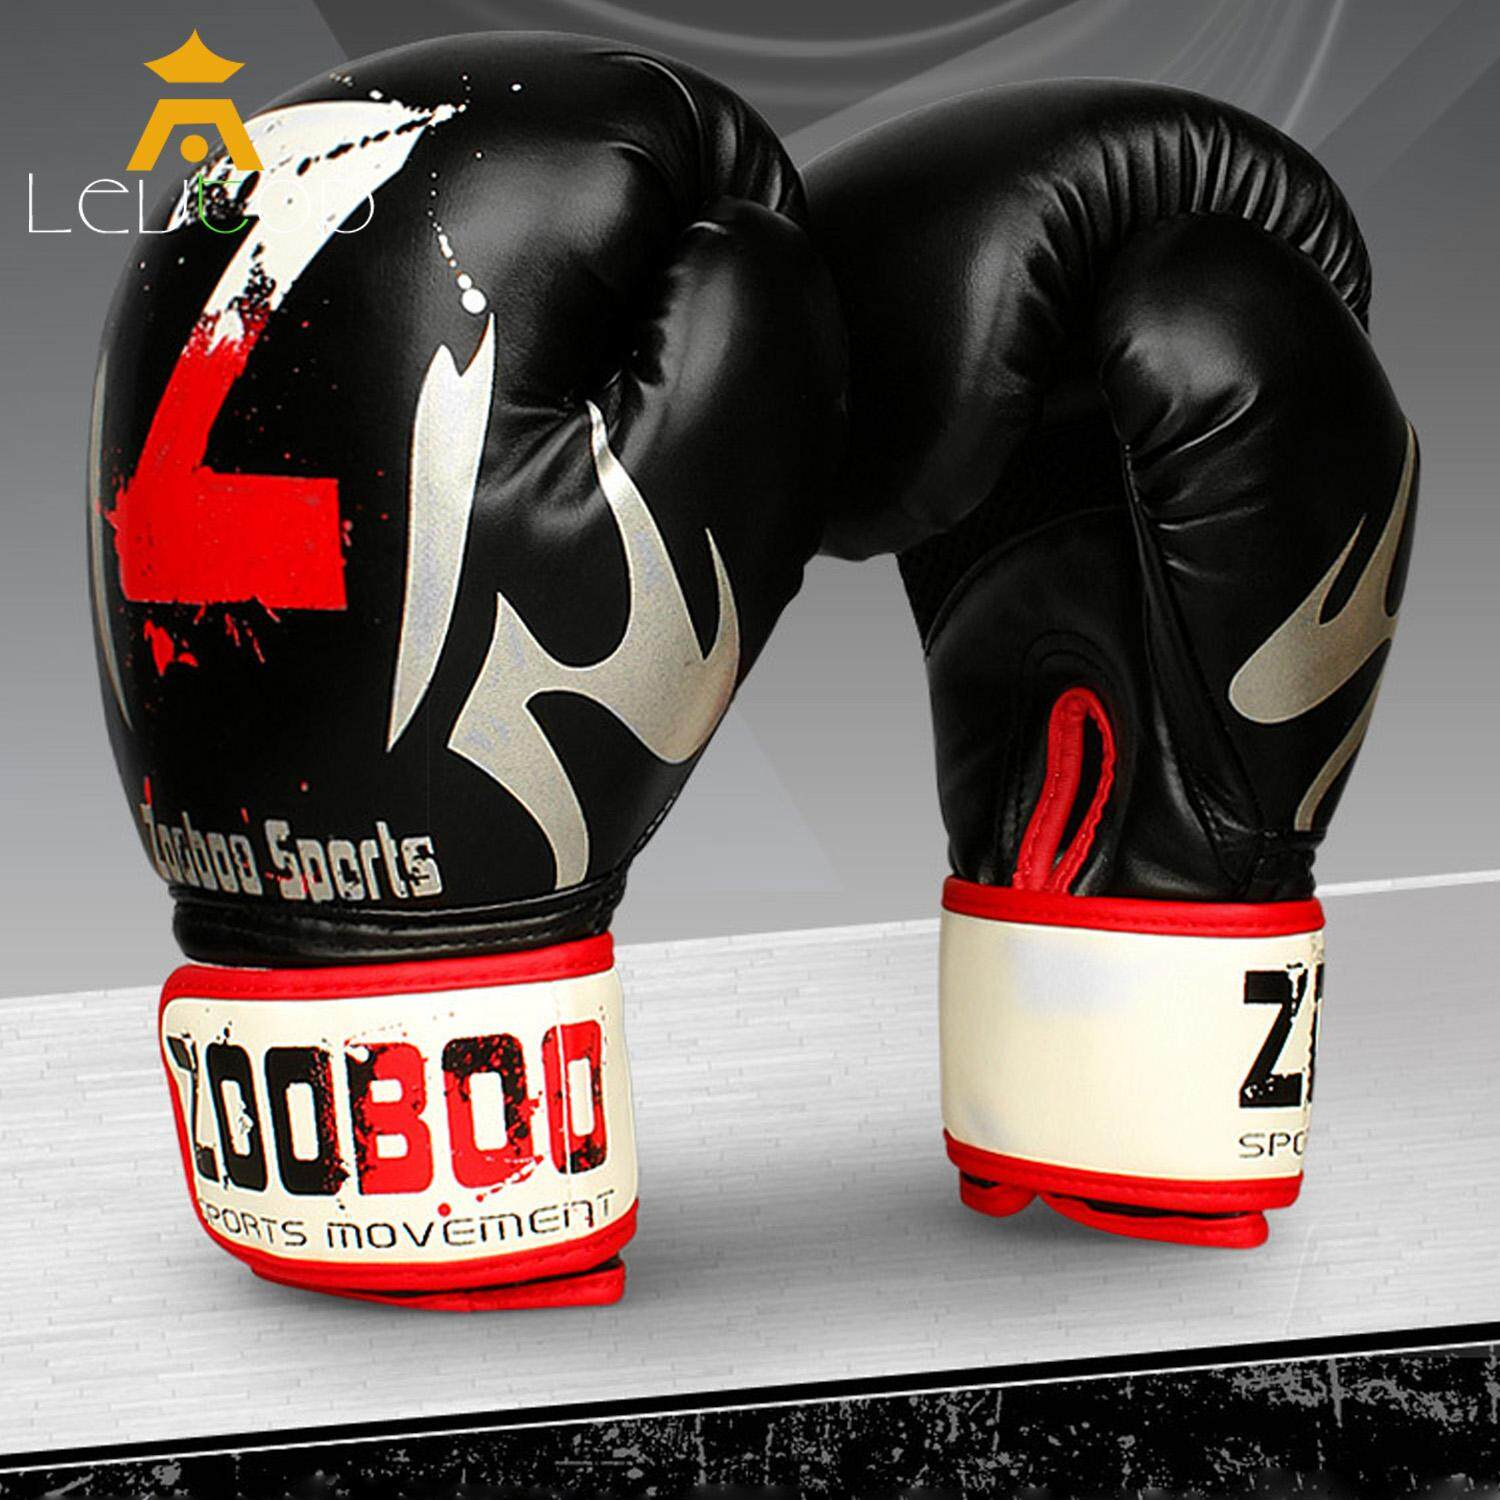 Levtop Boxing Gloves Professional Mma Muay Thai Boxing Punching Sparring Gloves Fighting Training Pu Leather Fitness Boxing Pads Mitt Kick Sports Gloves.